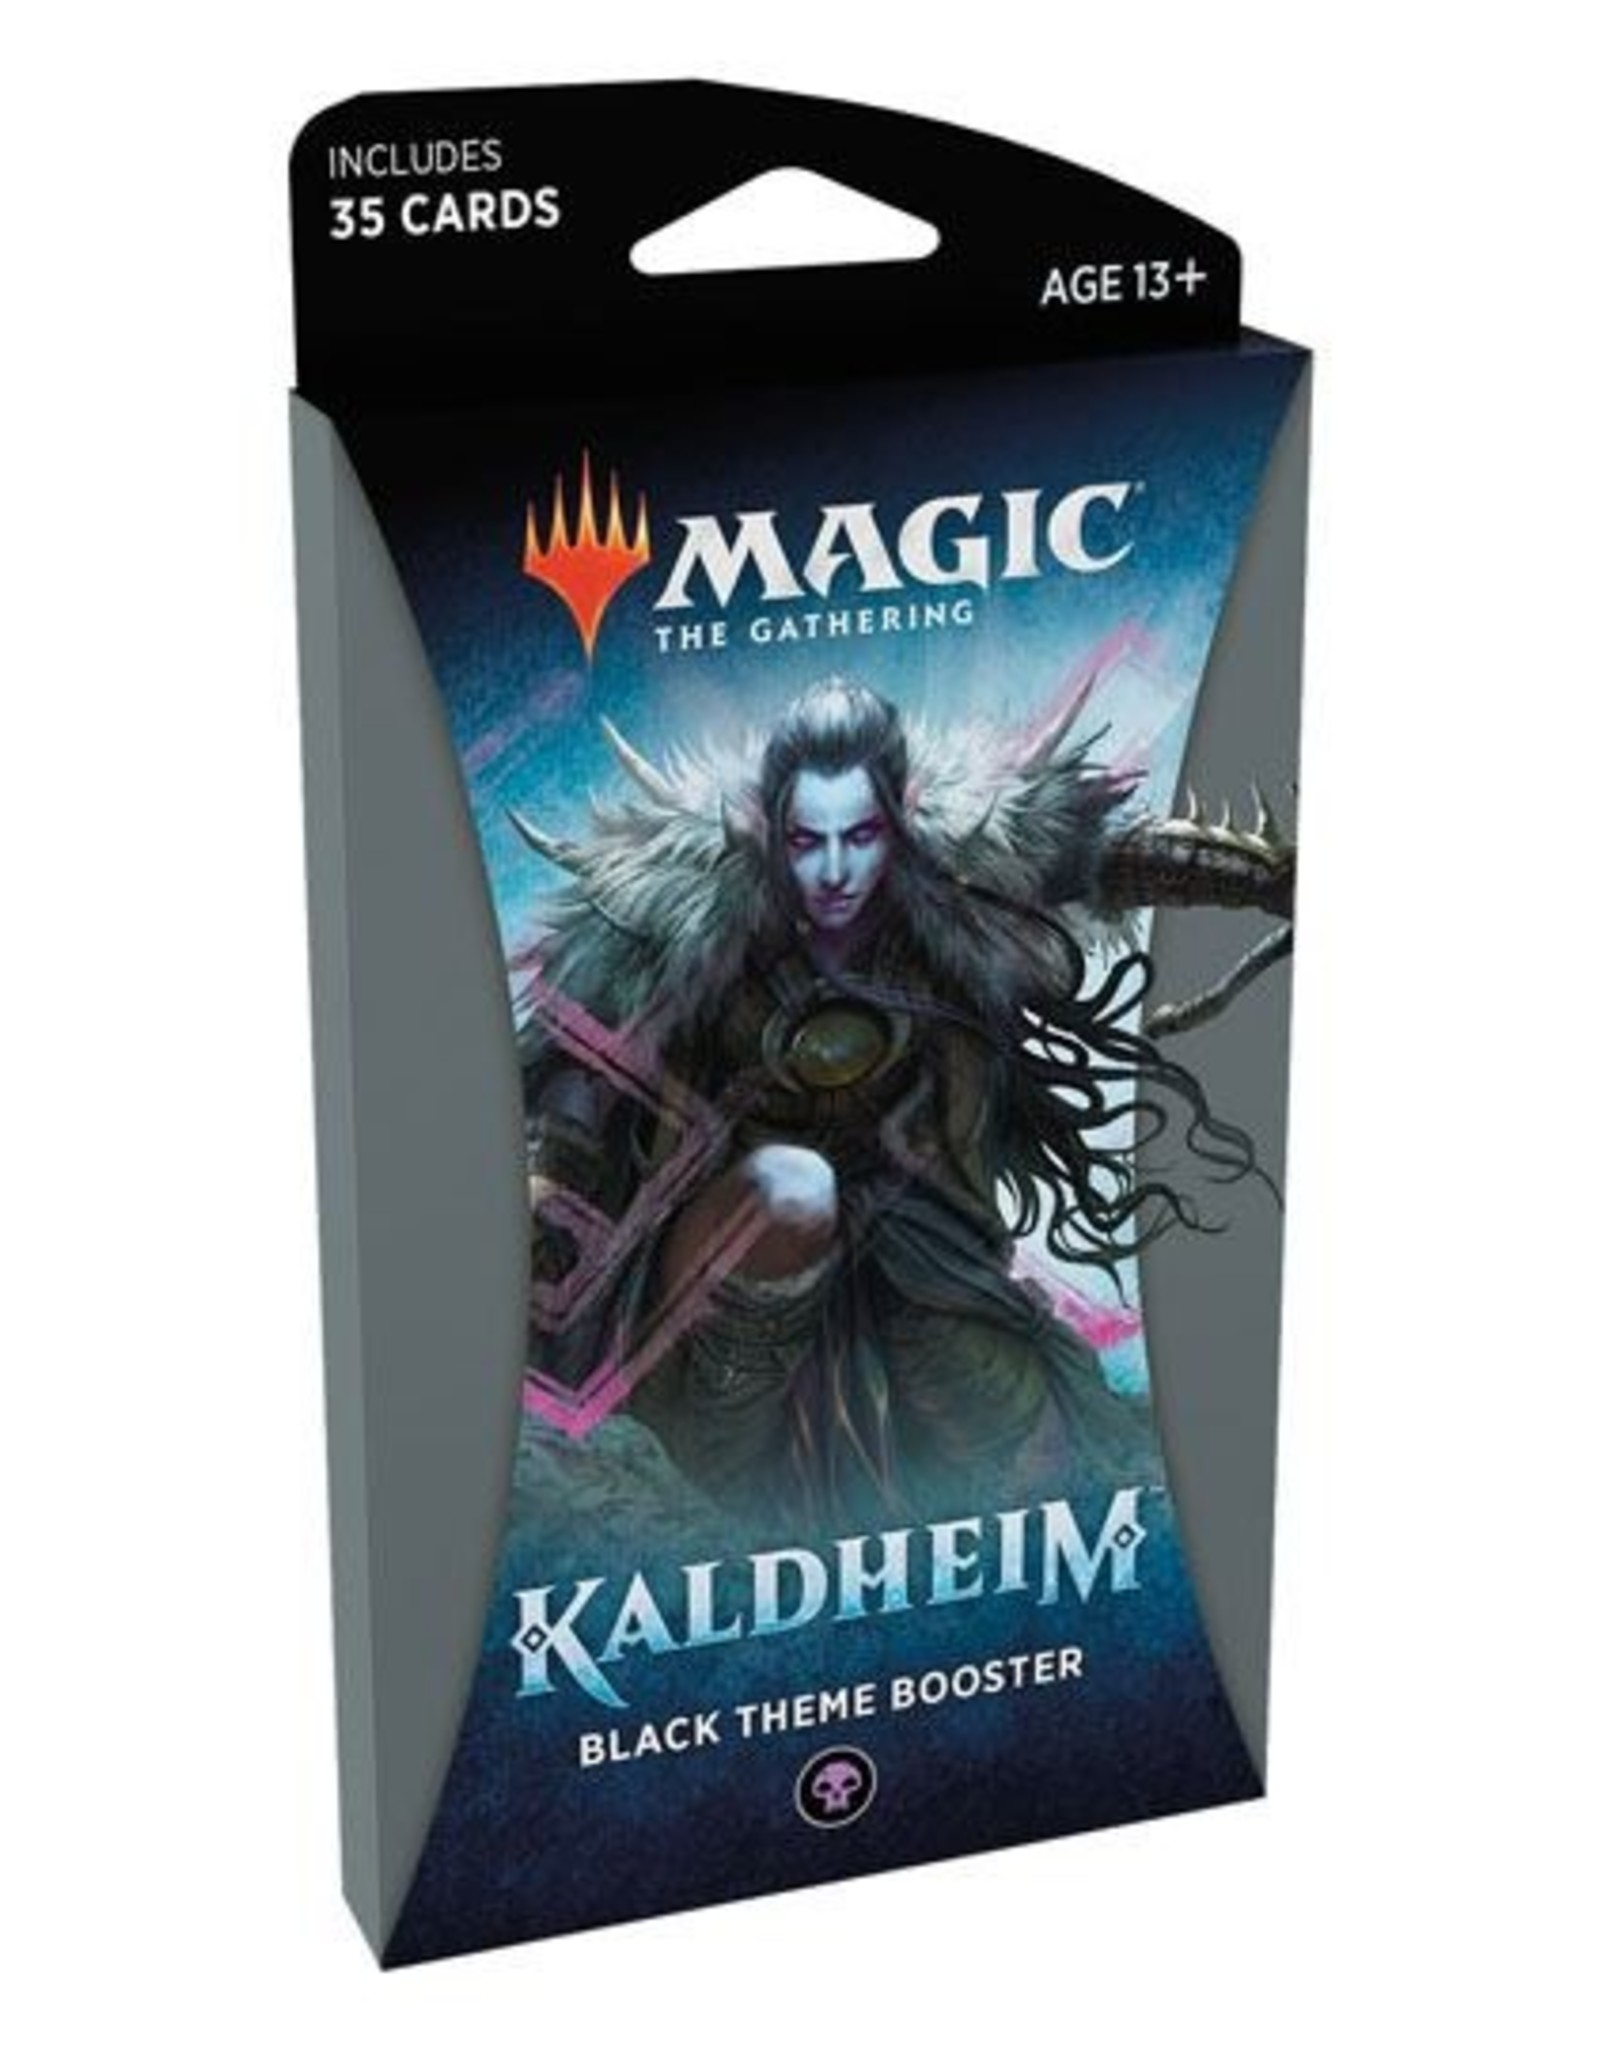 WIZARDS OF THE COAST Magic The Gathering - Kaldheim - Black Theme Booster pack (1) - English